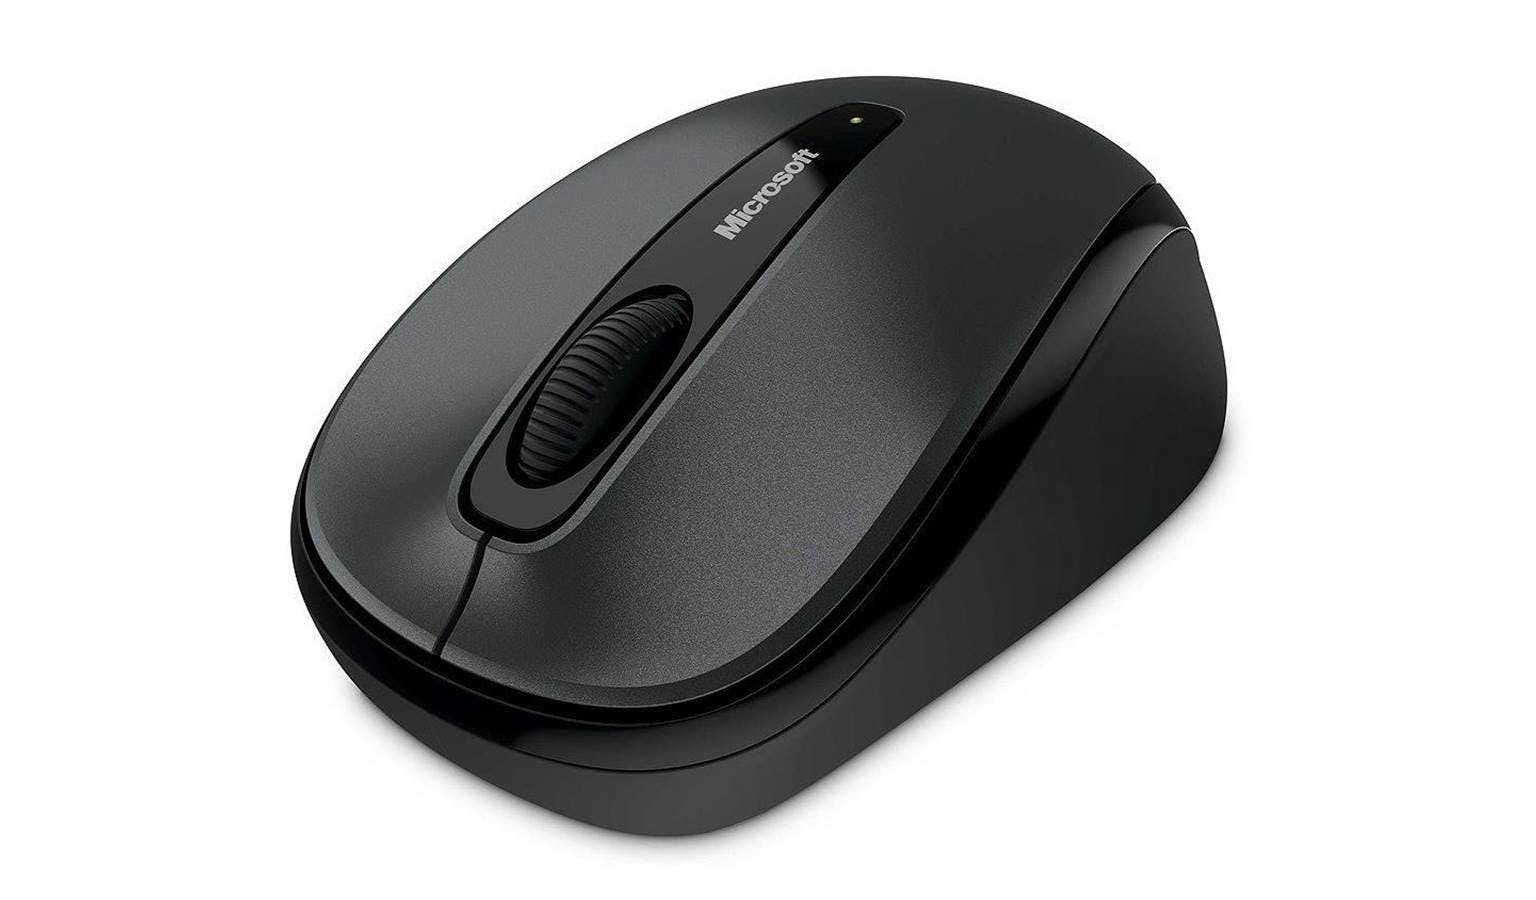 Microsoft 3500 Wireless Mobile Mouse - Grey